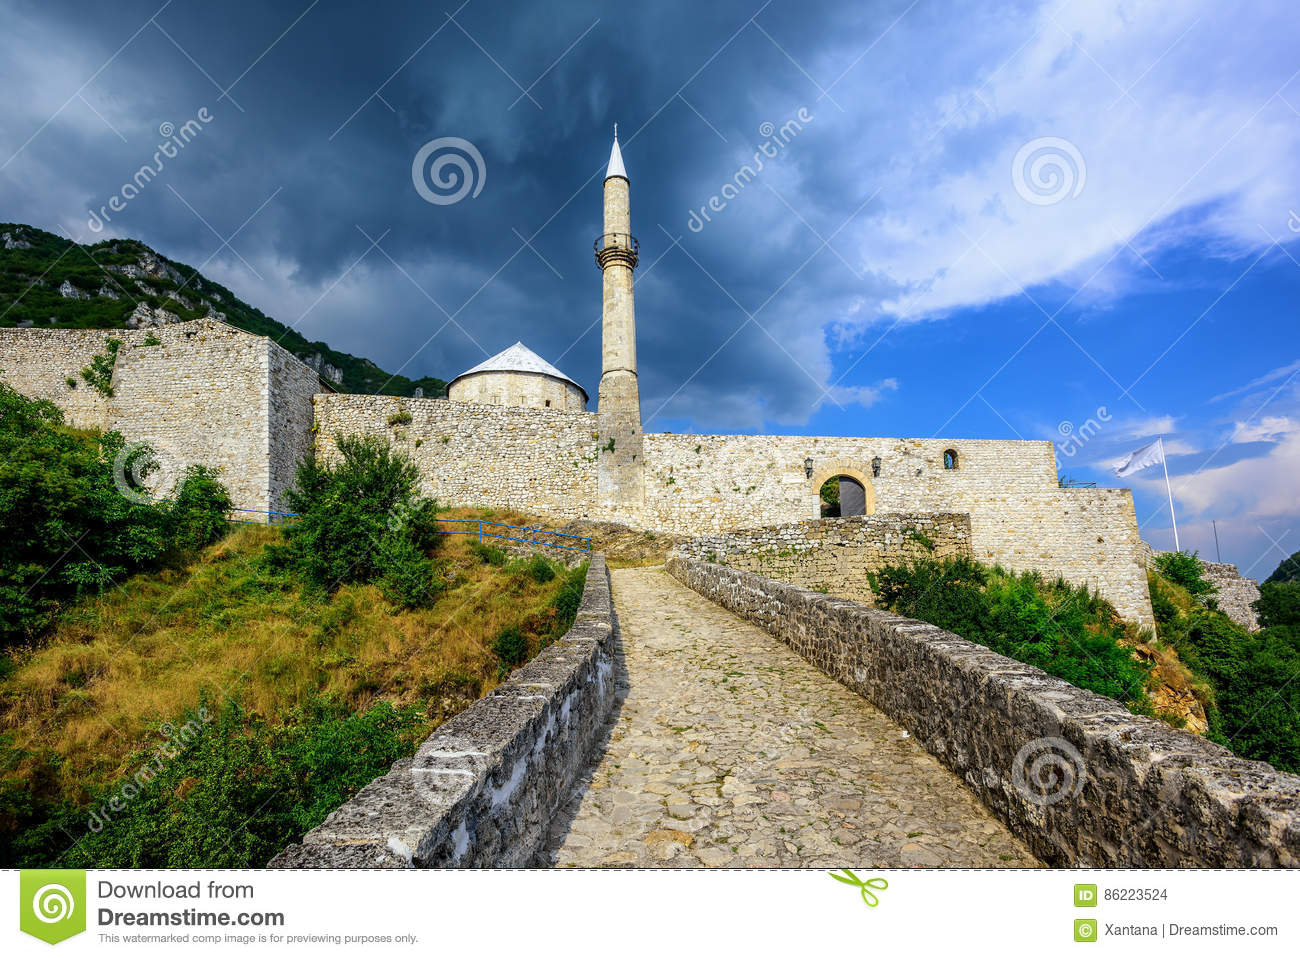 Stone fortress with a mosque in Travnik, Bosnia